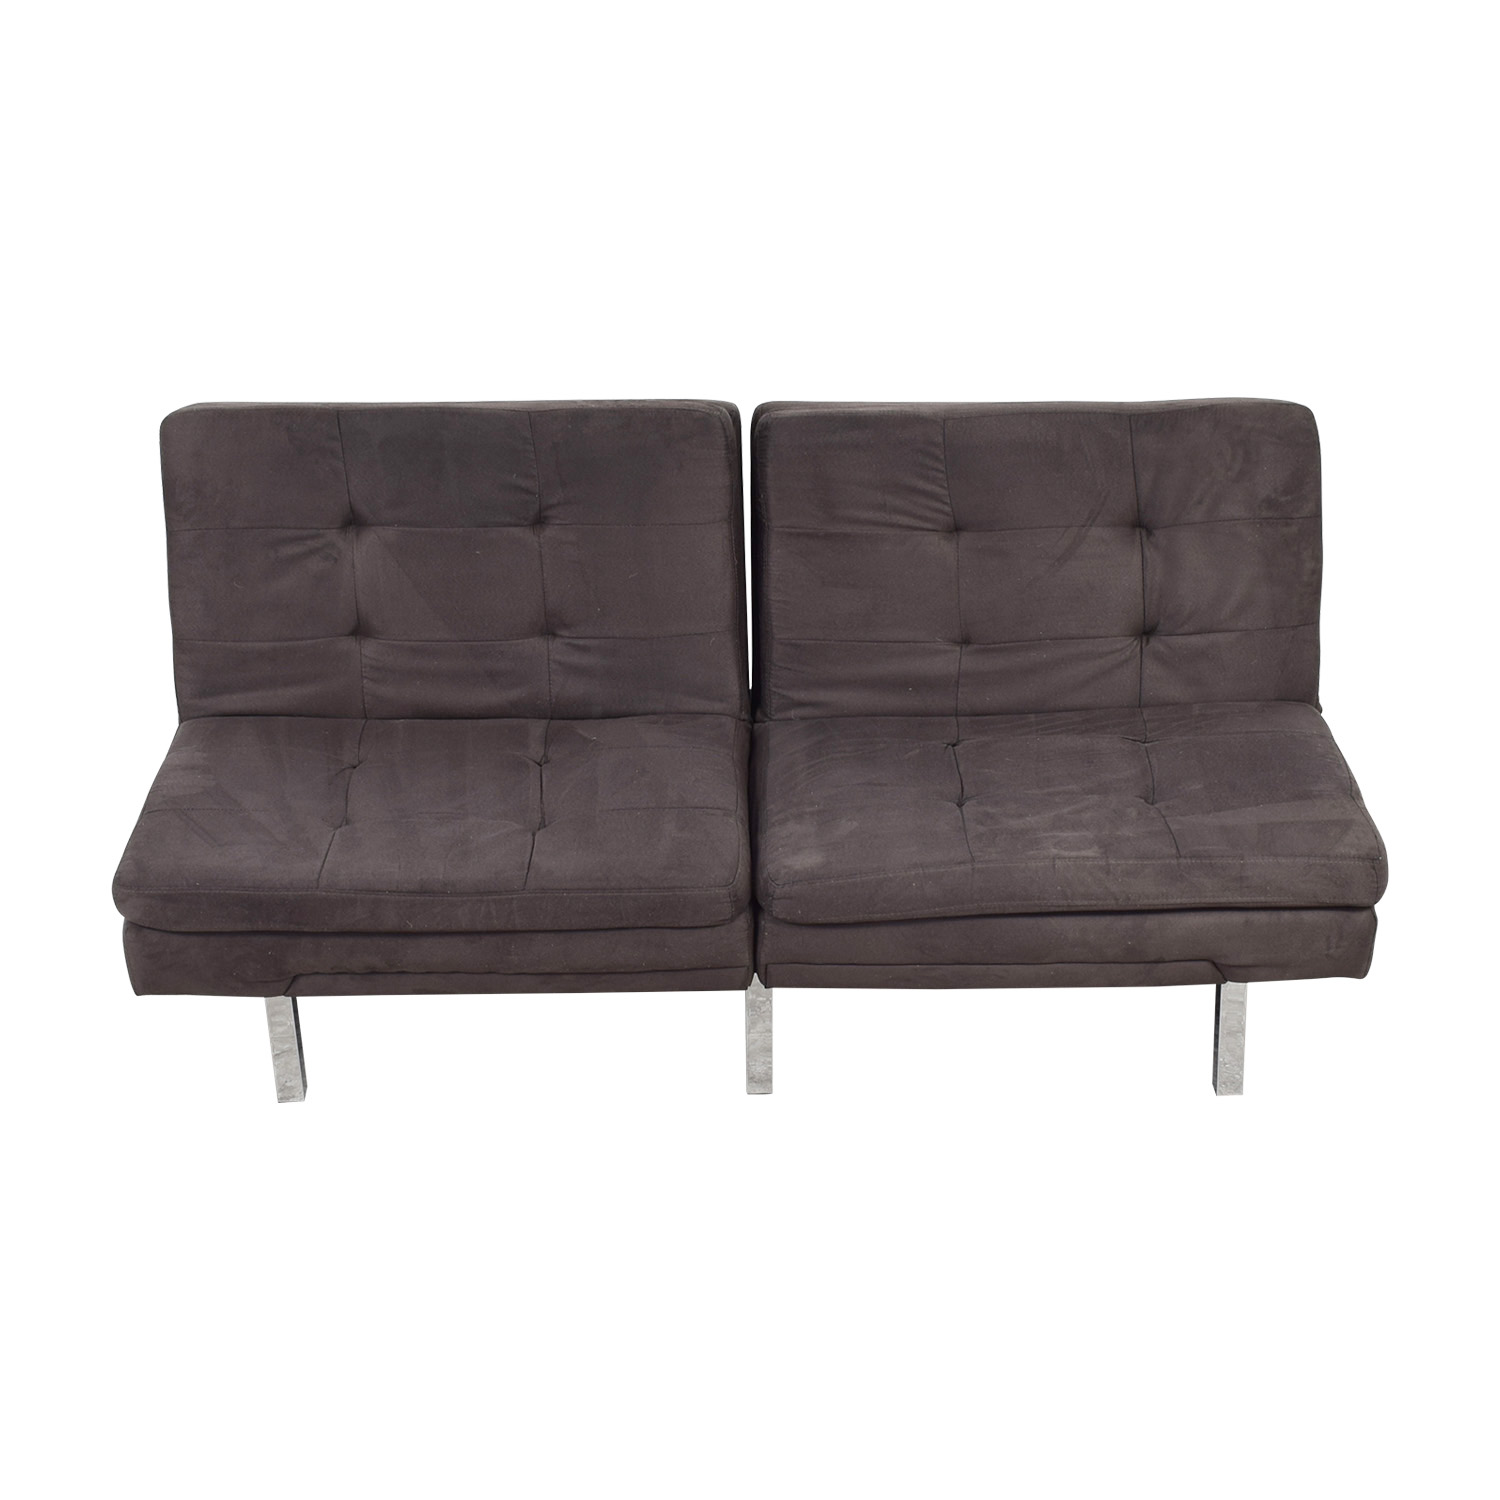 Charcoal Convertible Sofa price